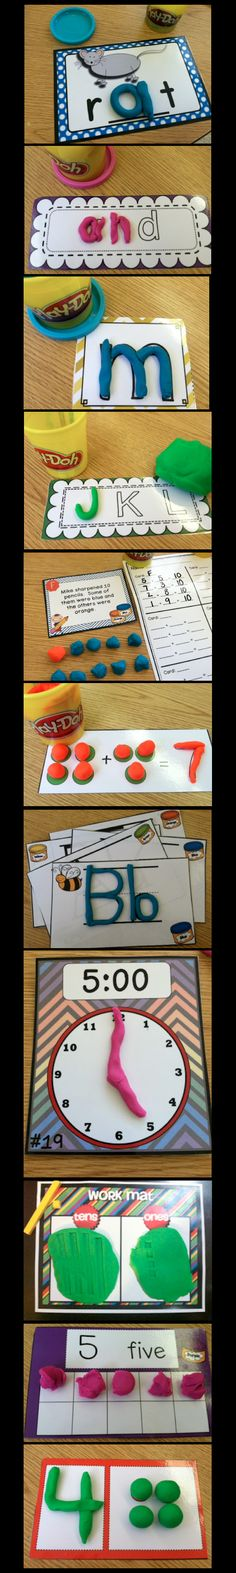 Great Ideas on Using Play-doh in the classroom.... keep learning fun! Primary Possibilities